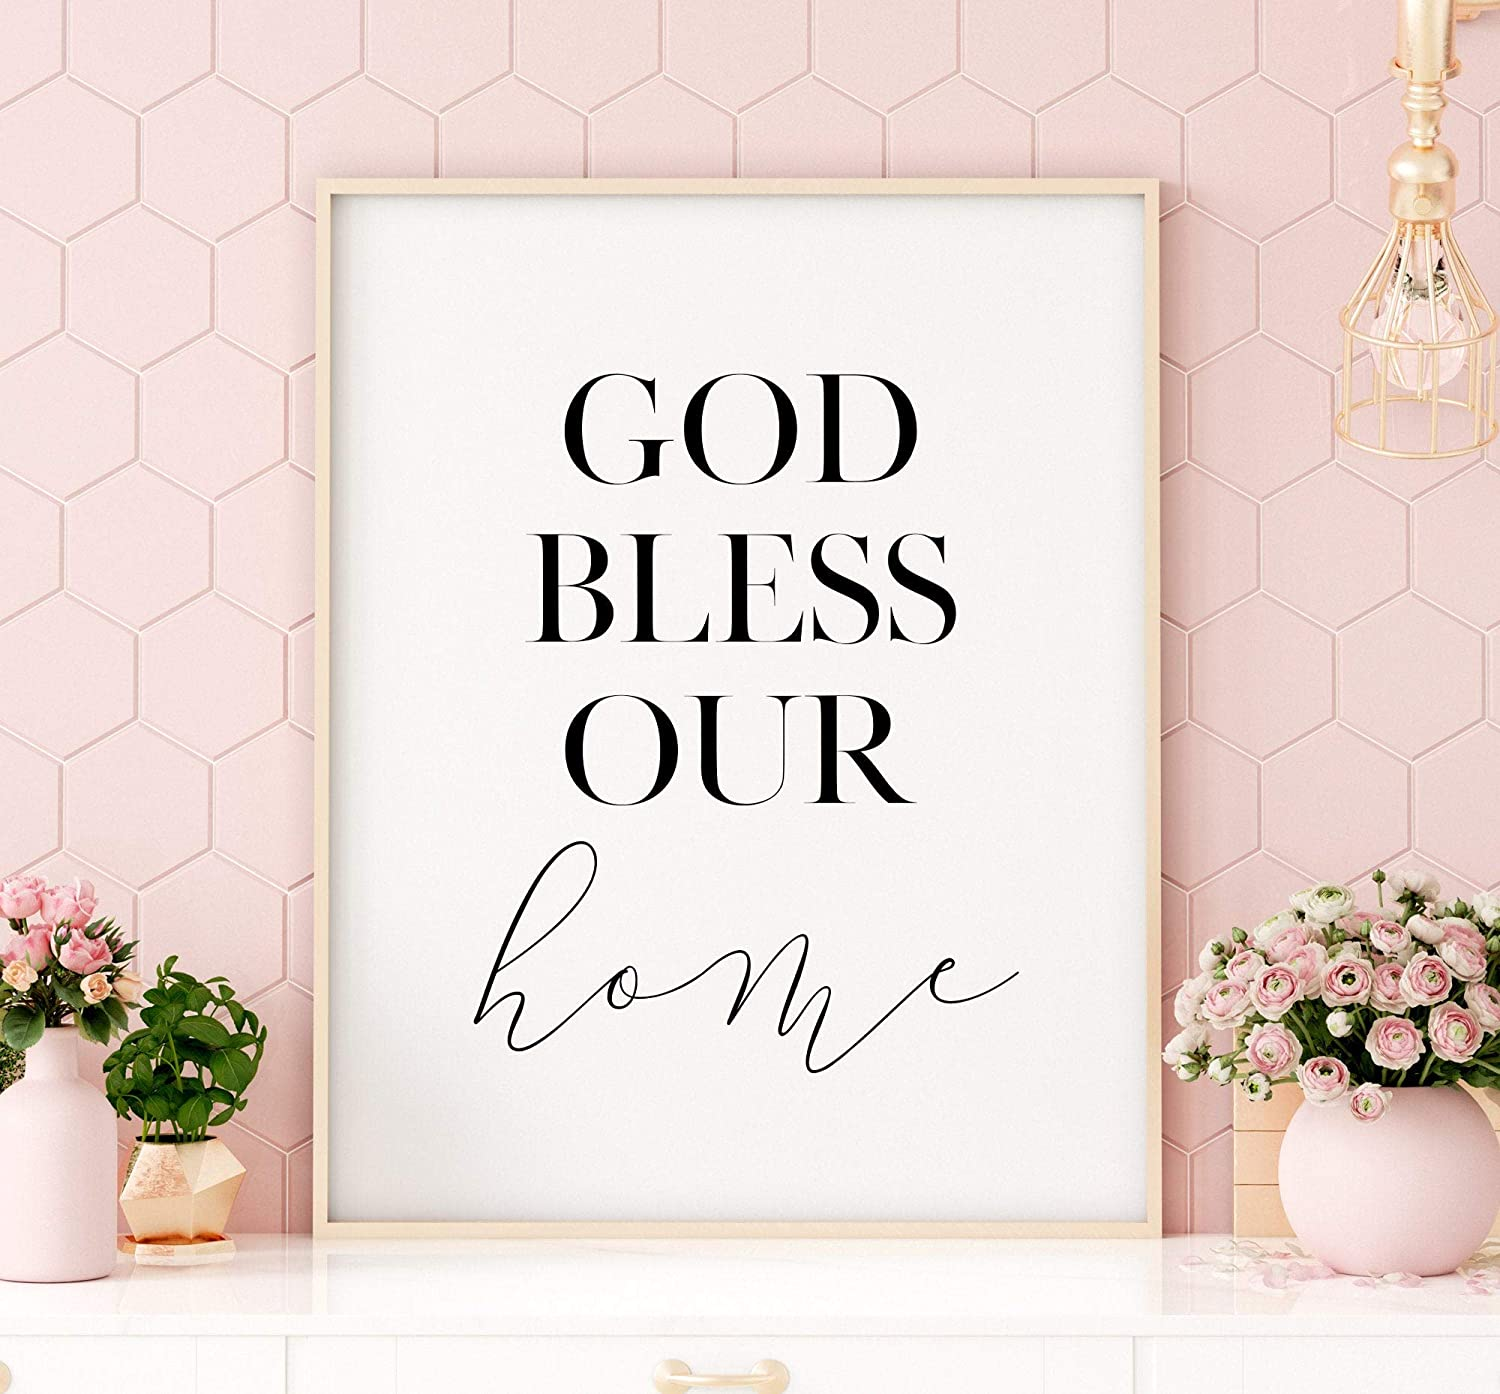 daoyiqi Wood Framed Bible Verse Sign 16x20 Inch God Bless Our Home Printable Art Home Sign Welcome Home Print Home Printable Wall Art Decor Home Decorative